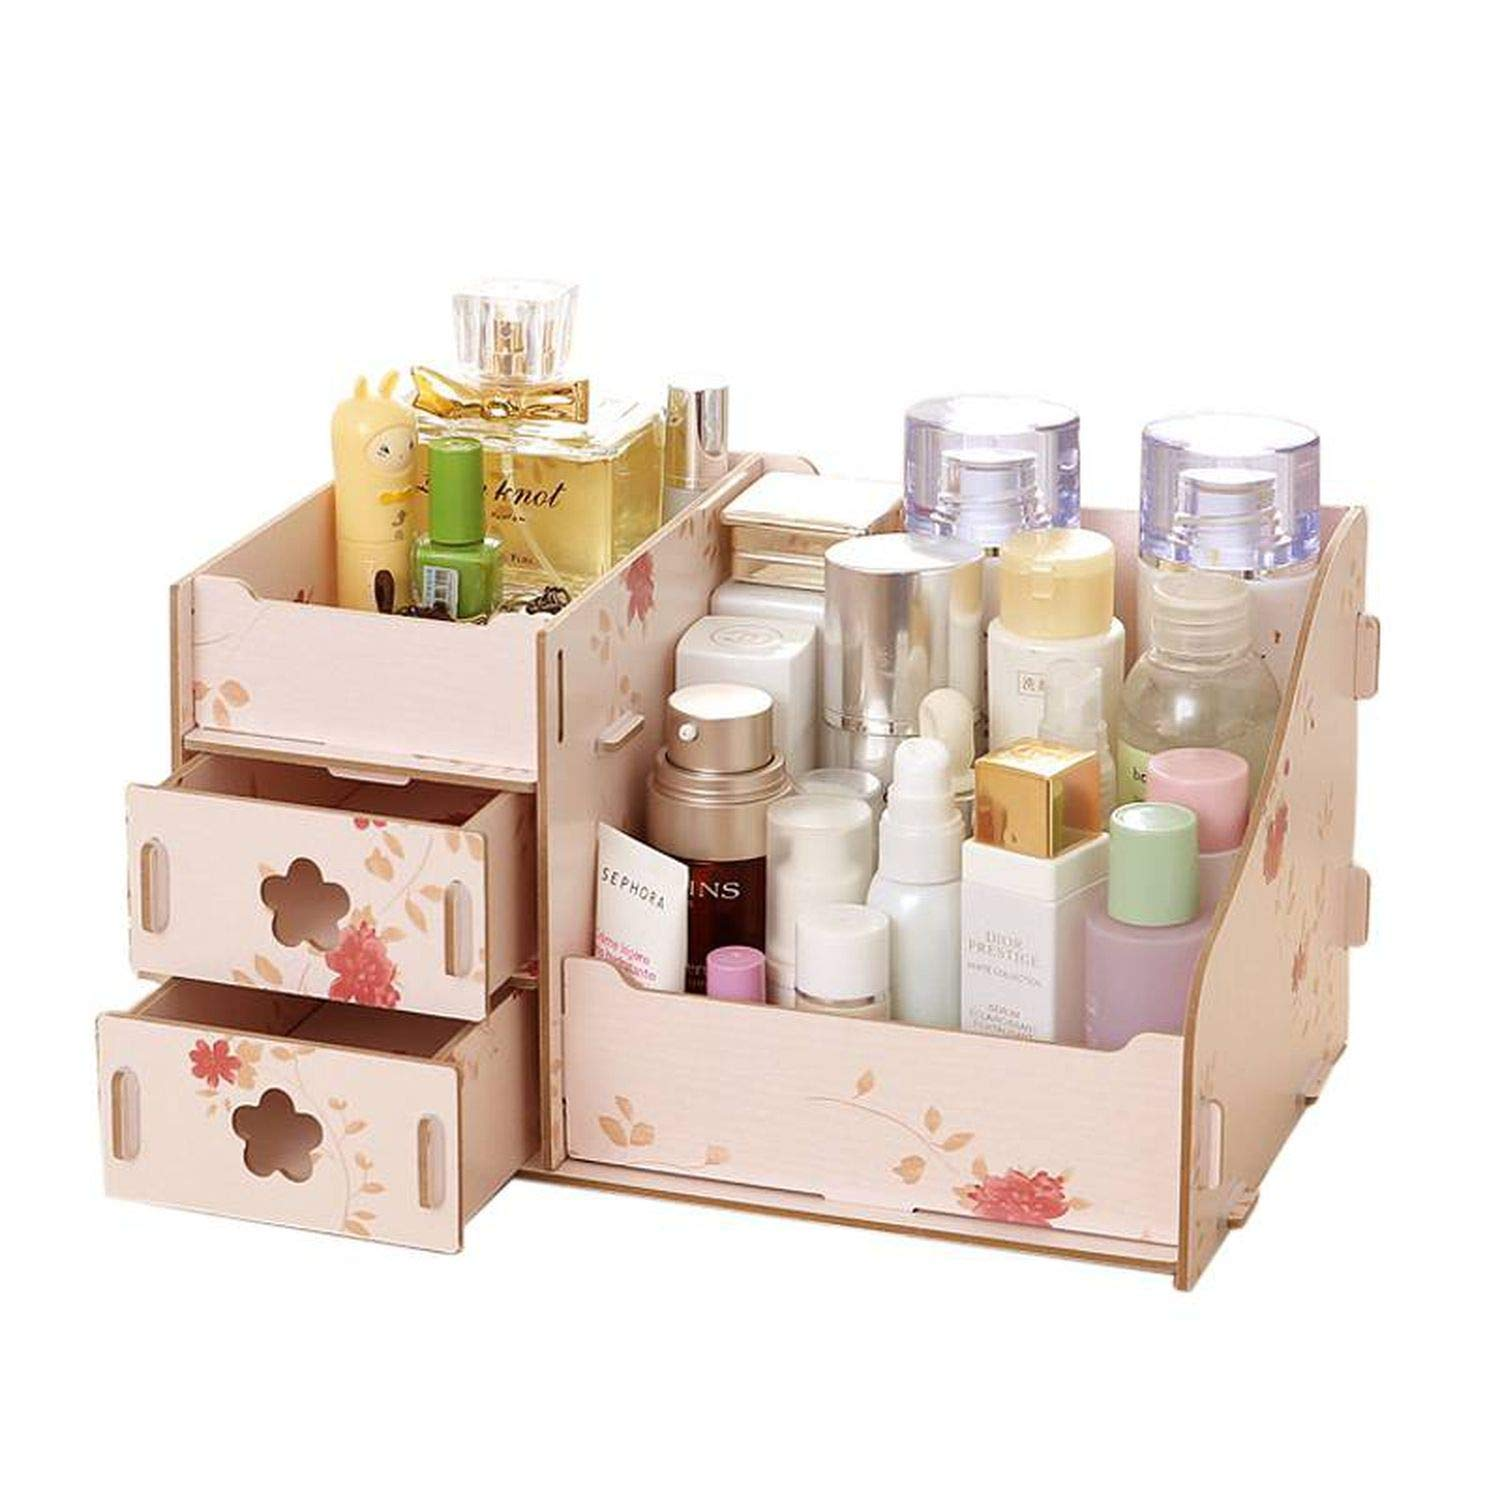 Collocation-Online Wooden Cosmetic Storage Boxes Small Drawer Jewelry Box Desktop Sundries Handmade DIY Makeup,Flower A